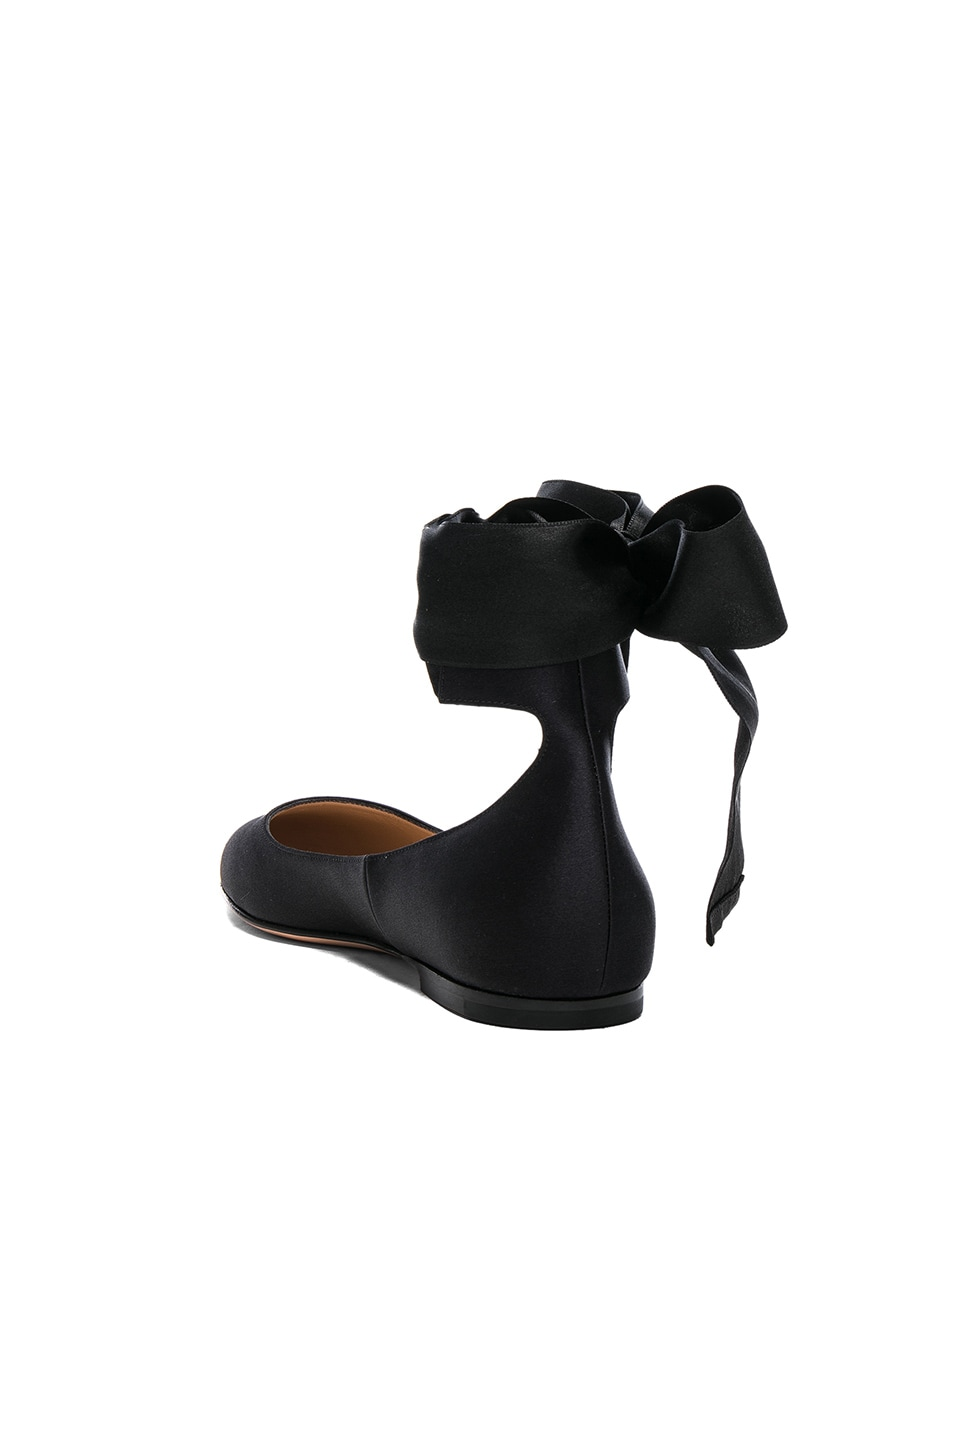 Image 3 of Gianvito Rossi Satin Ankle Tie Flats in Black